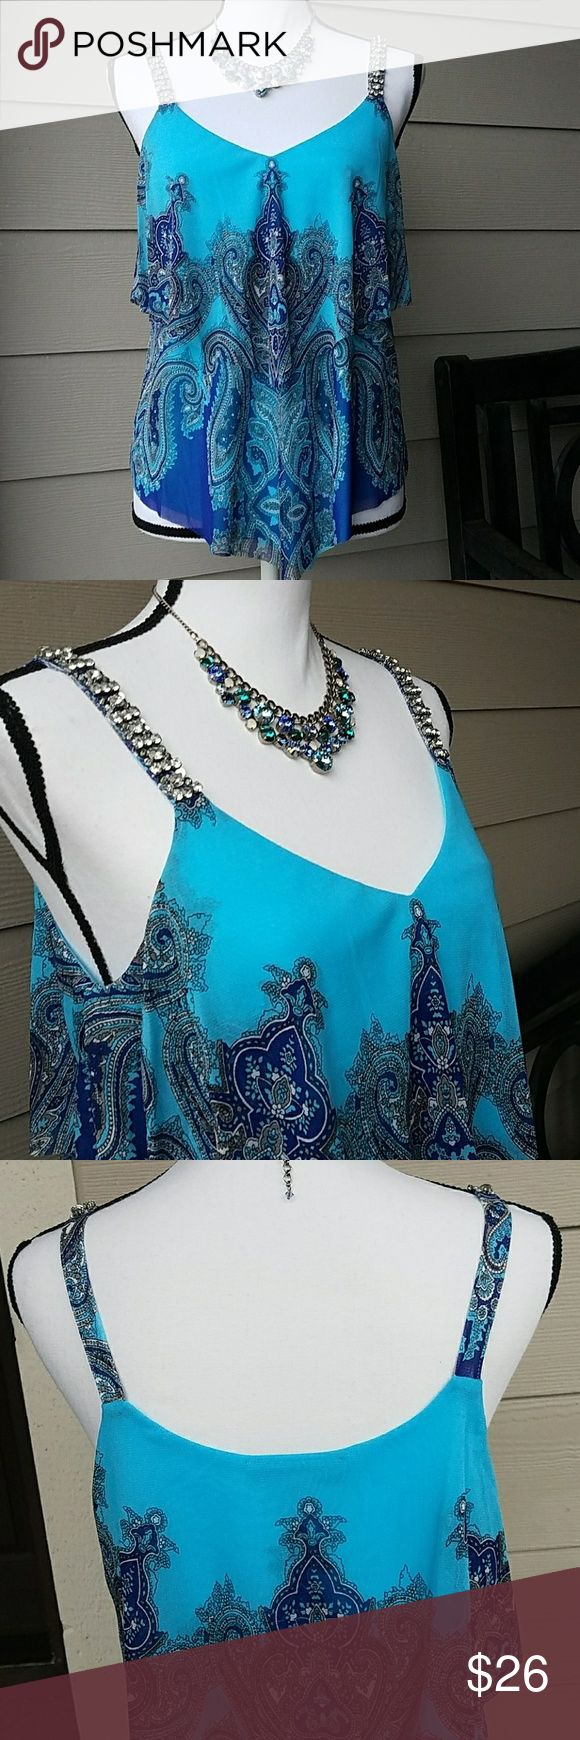 Macy's INC Tiered Paisley Nylon Tank SZ Med 100% Nylon, V-Neck, Crystal Accents on Straps, Tried on Never Worn. Colors: Aqua Blue/Blue/Gray /White INC International Concepts Tops Tank Tops